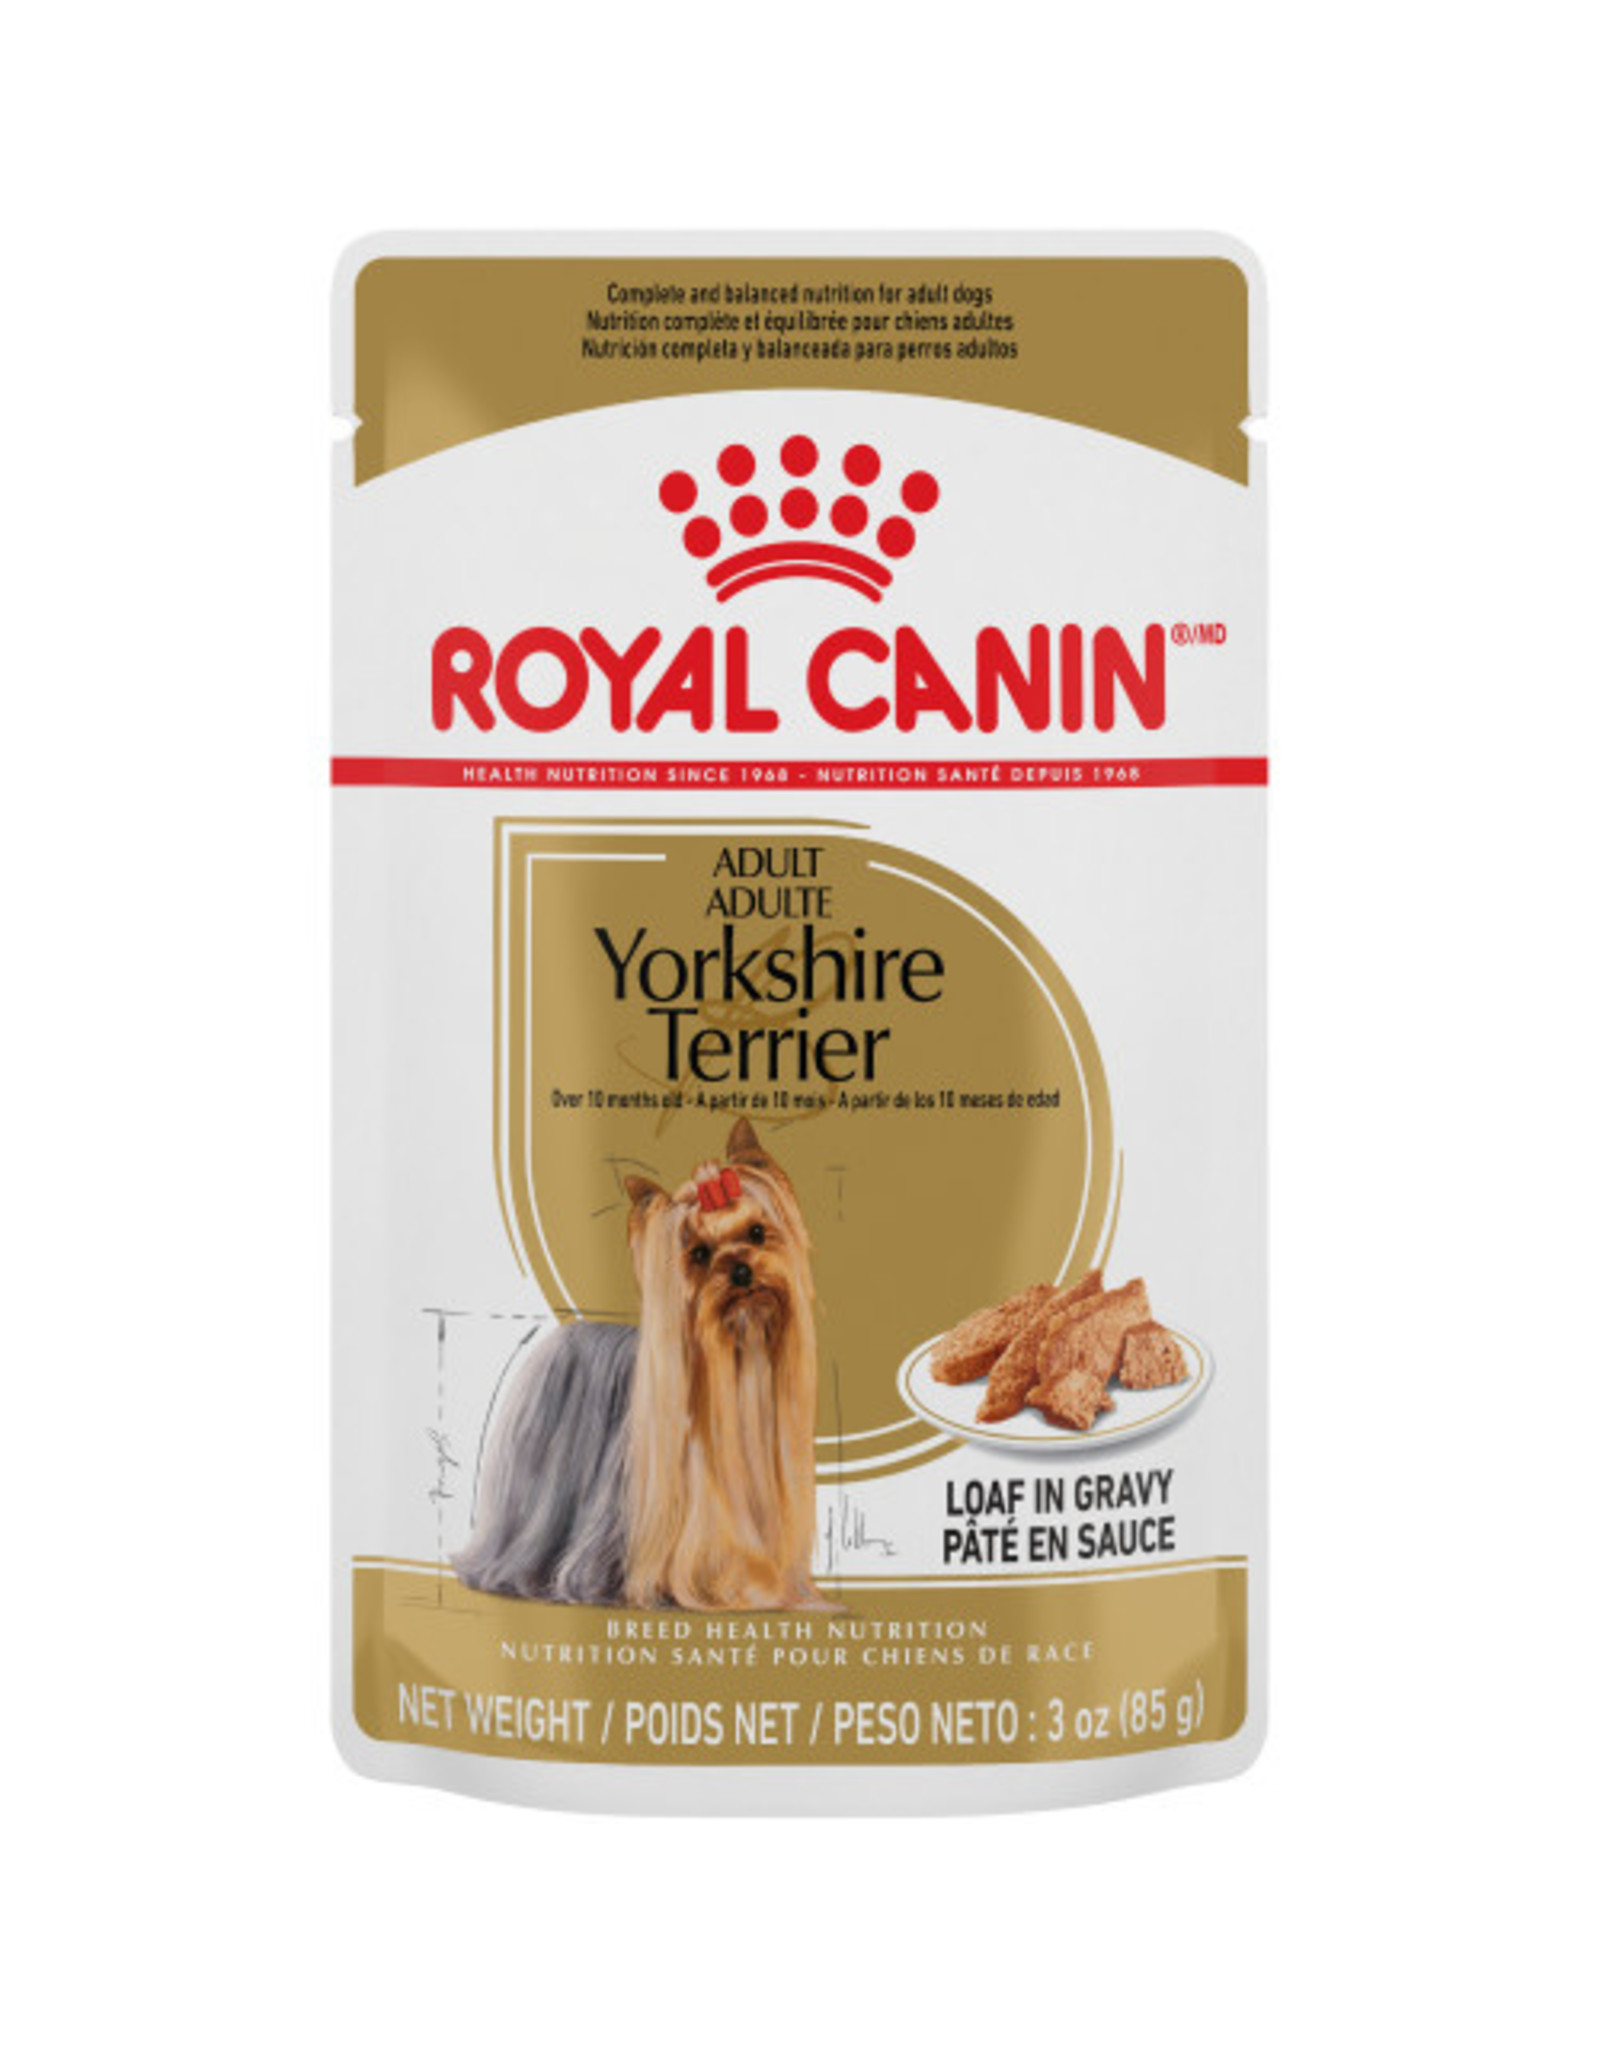 Royal Canin Yorkshire Loaf in Gravy Pouch 85g